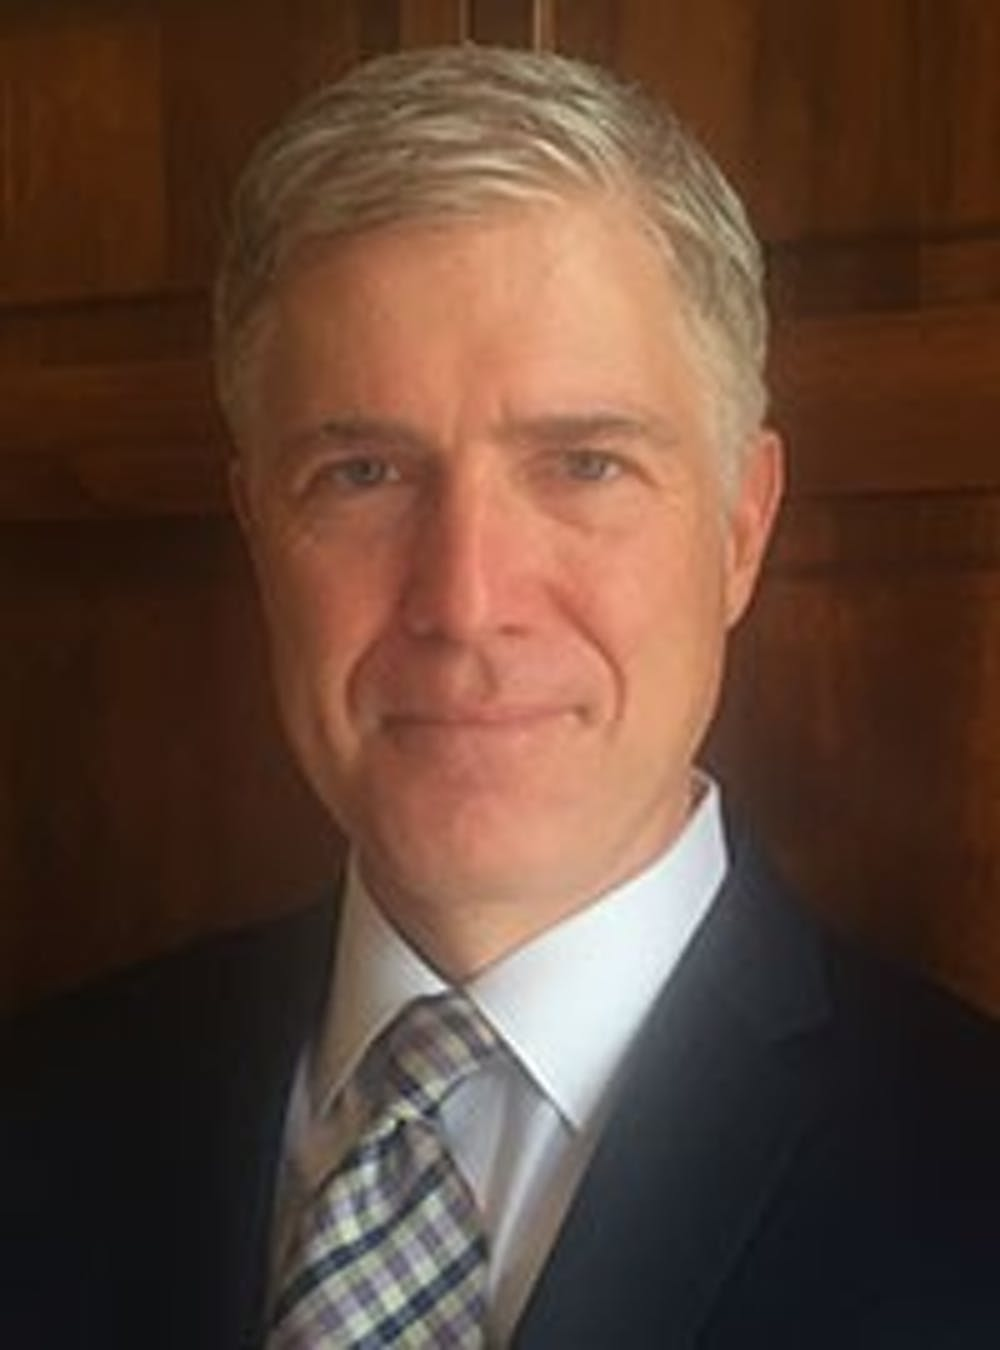 Gorsuch confirmation re-establishes conservative majority on Supreme Court